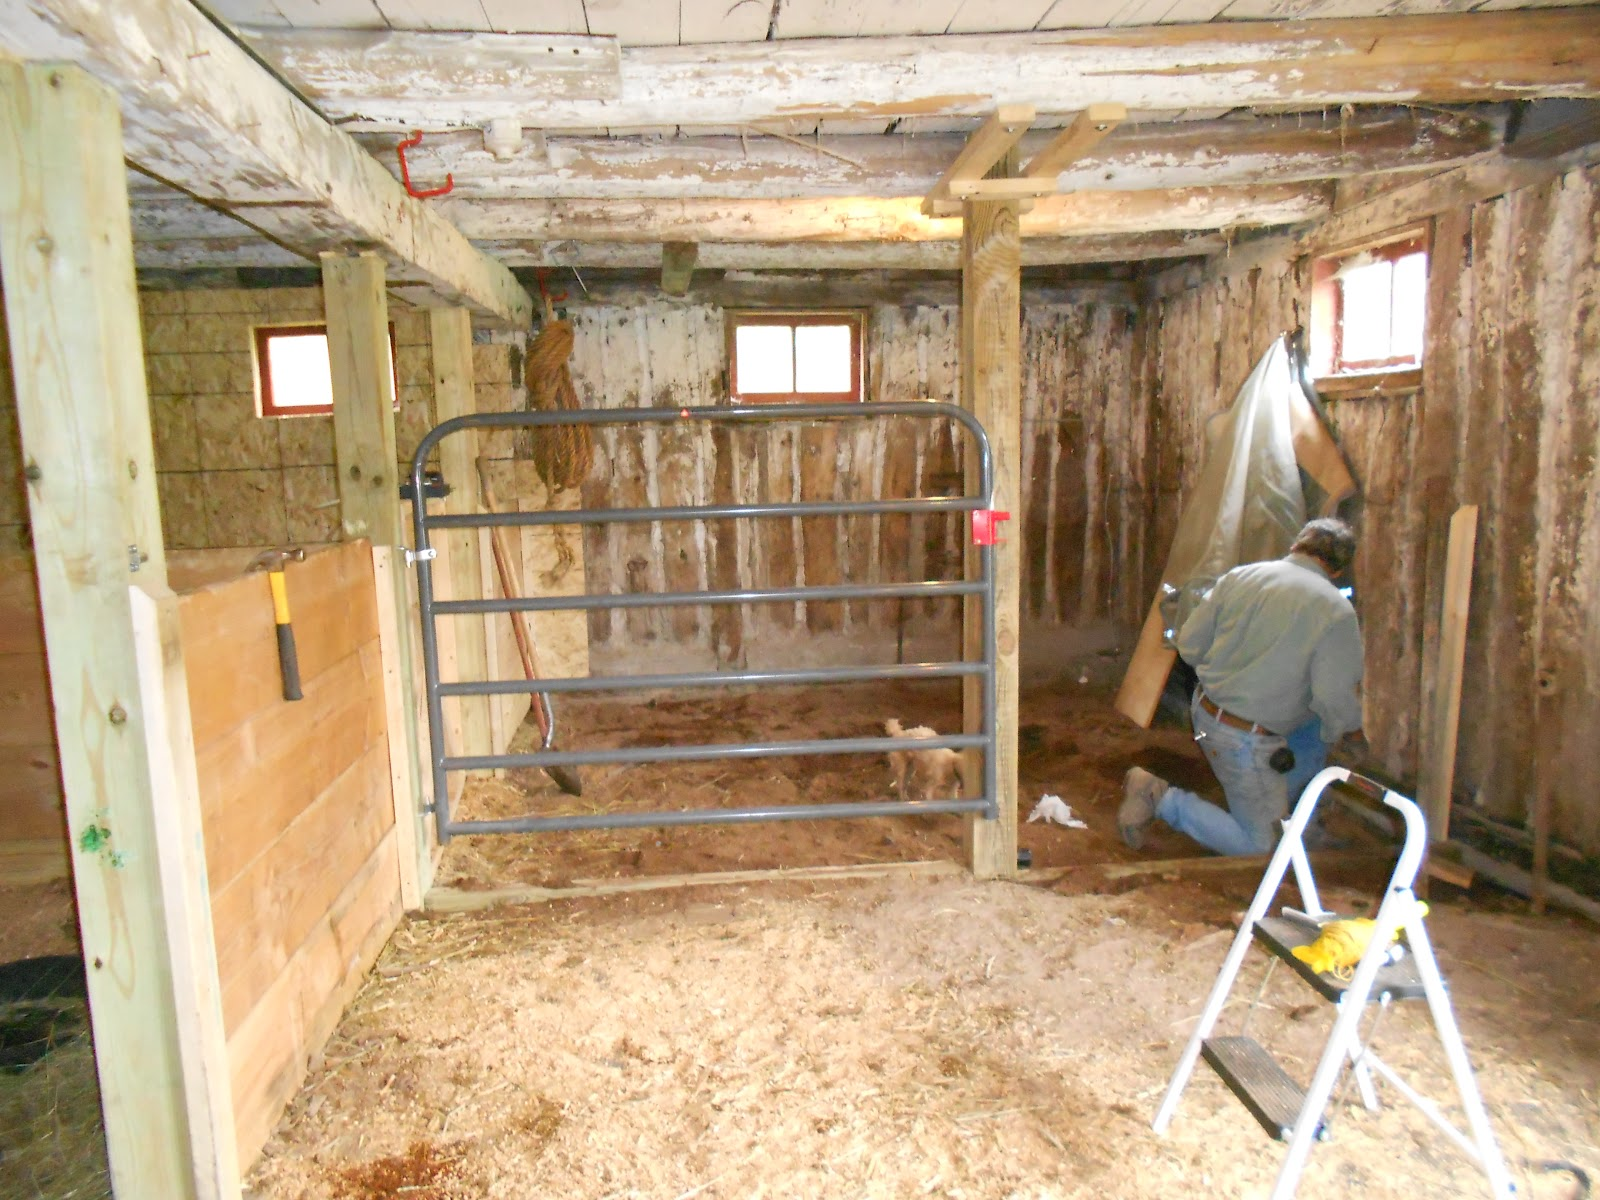 Rubber floor mats barn - Center Support Beam Up Six Foot Gate Installed And 4 X4 S Laid Down As Base Supports